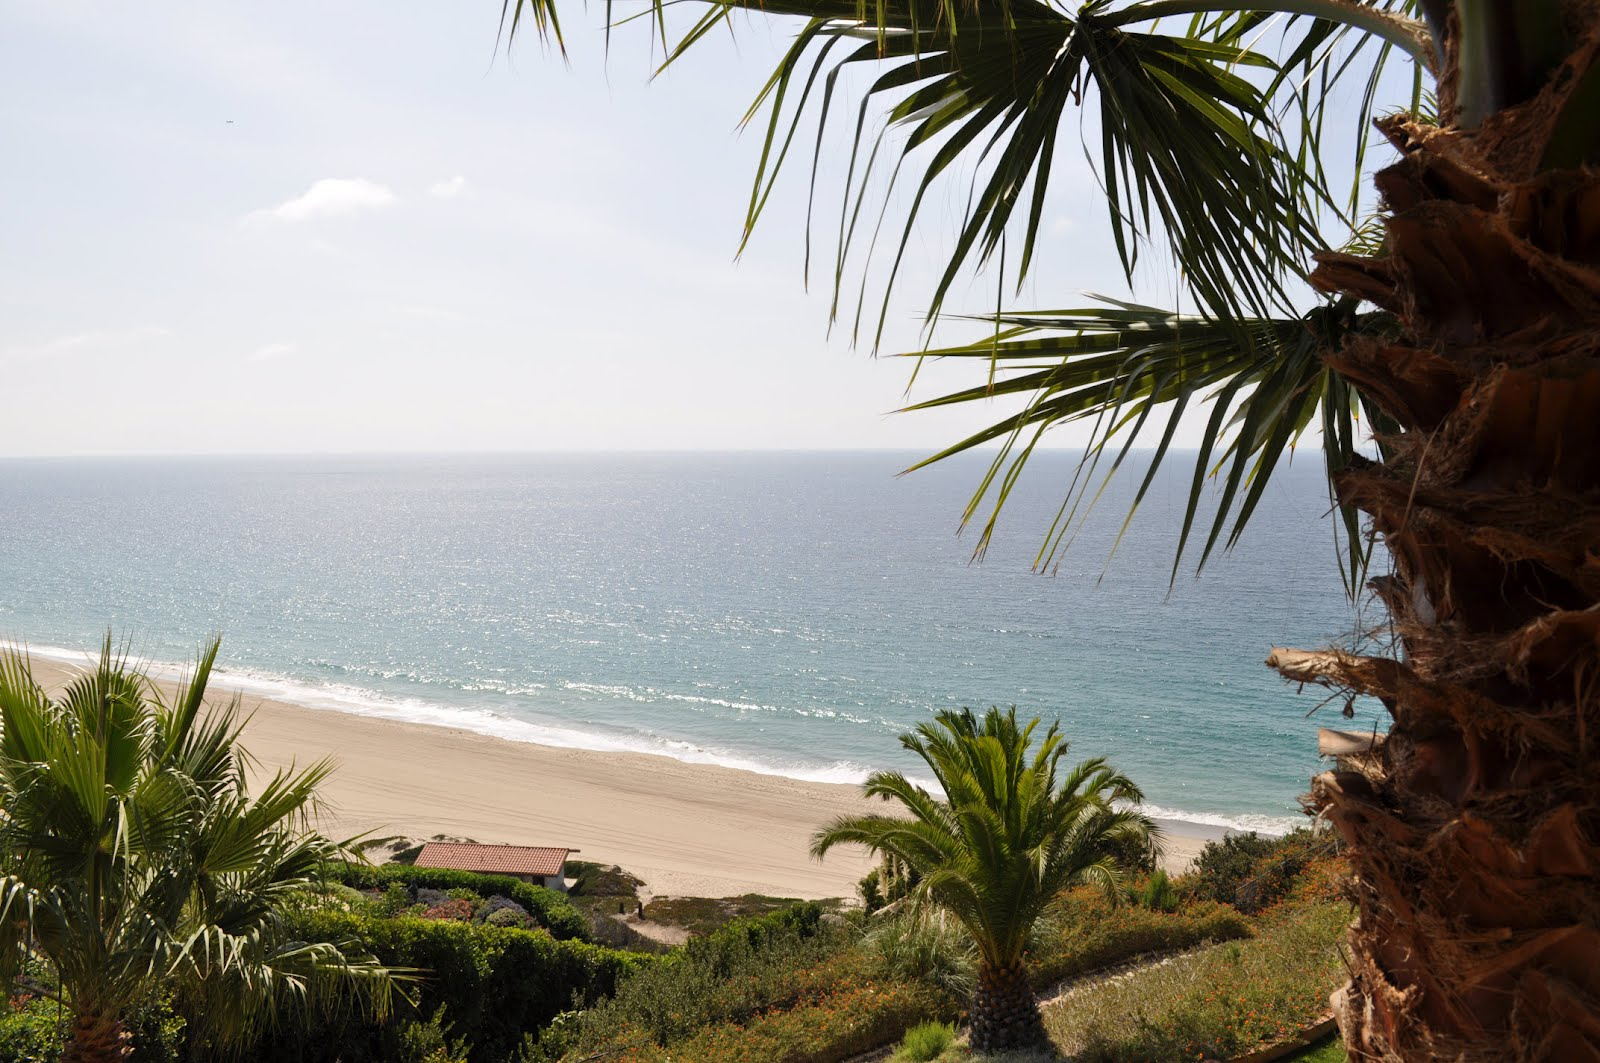 jet luxury resorts things to do in malibu eat stay play